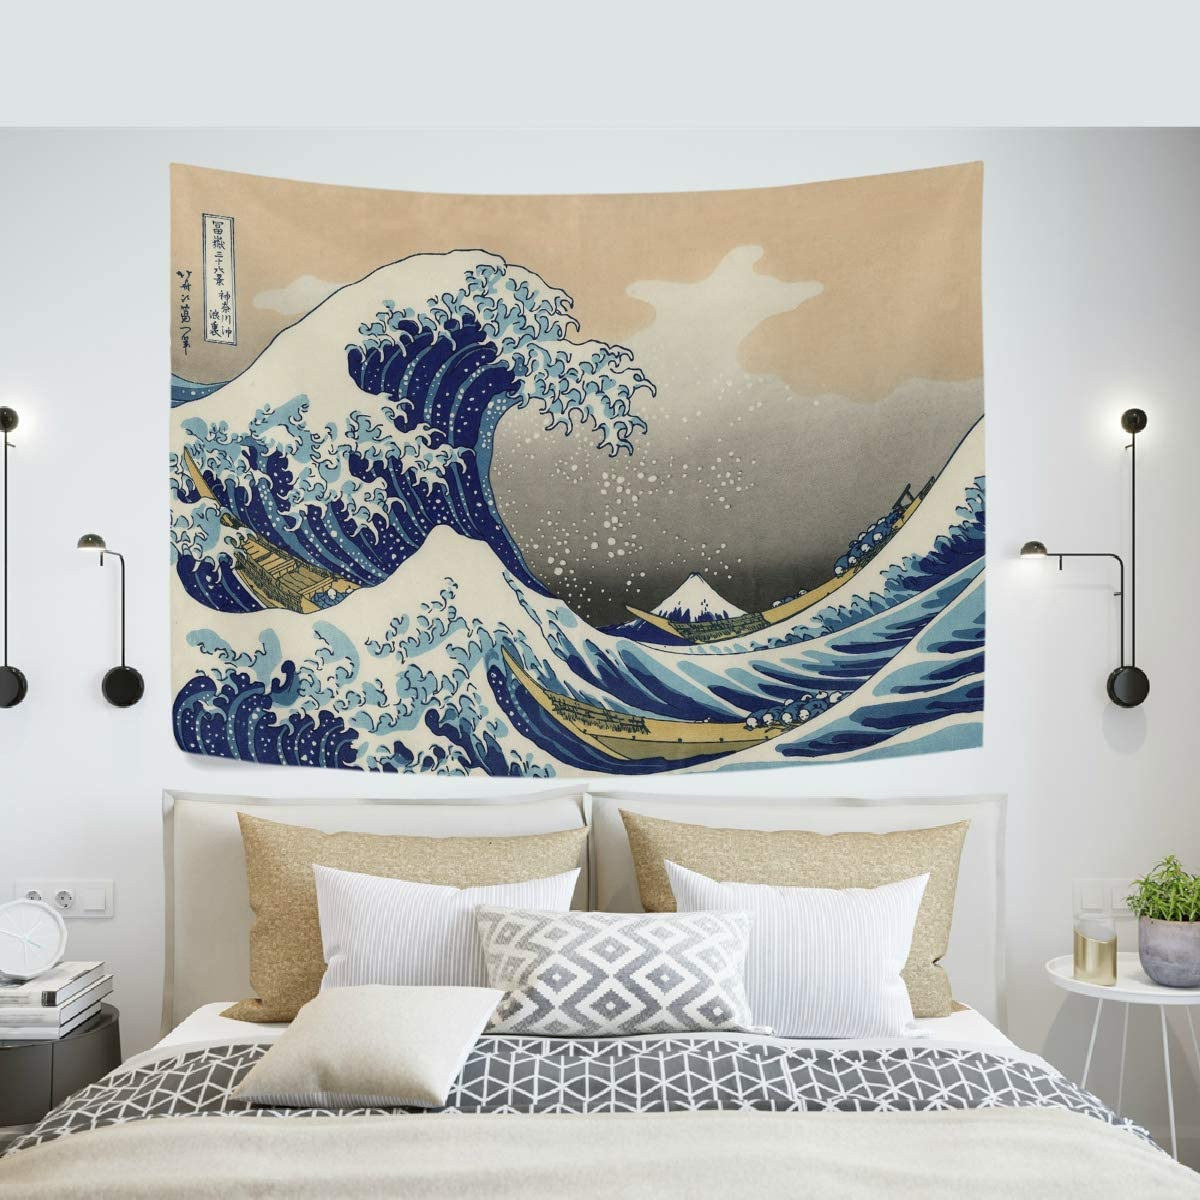 Tapestry Great Waves of Kanagawa Big Tsunami Nautical Pattern Wall Hanging Art Home Decor Polyester Tapestry for Living Room Bedroom Bathroom Kitchen Dorm 60 x 51 Inches